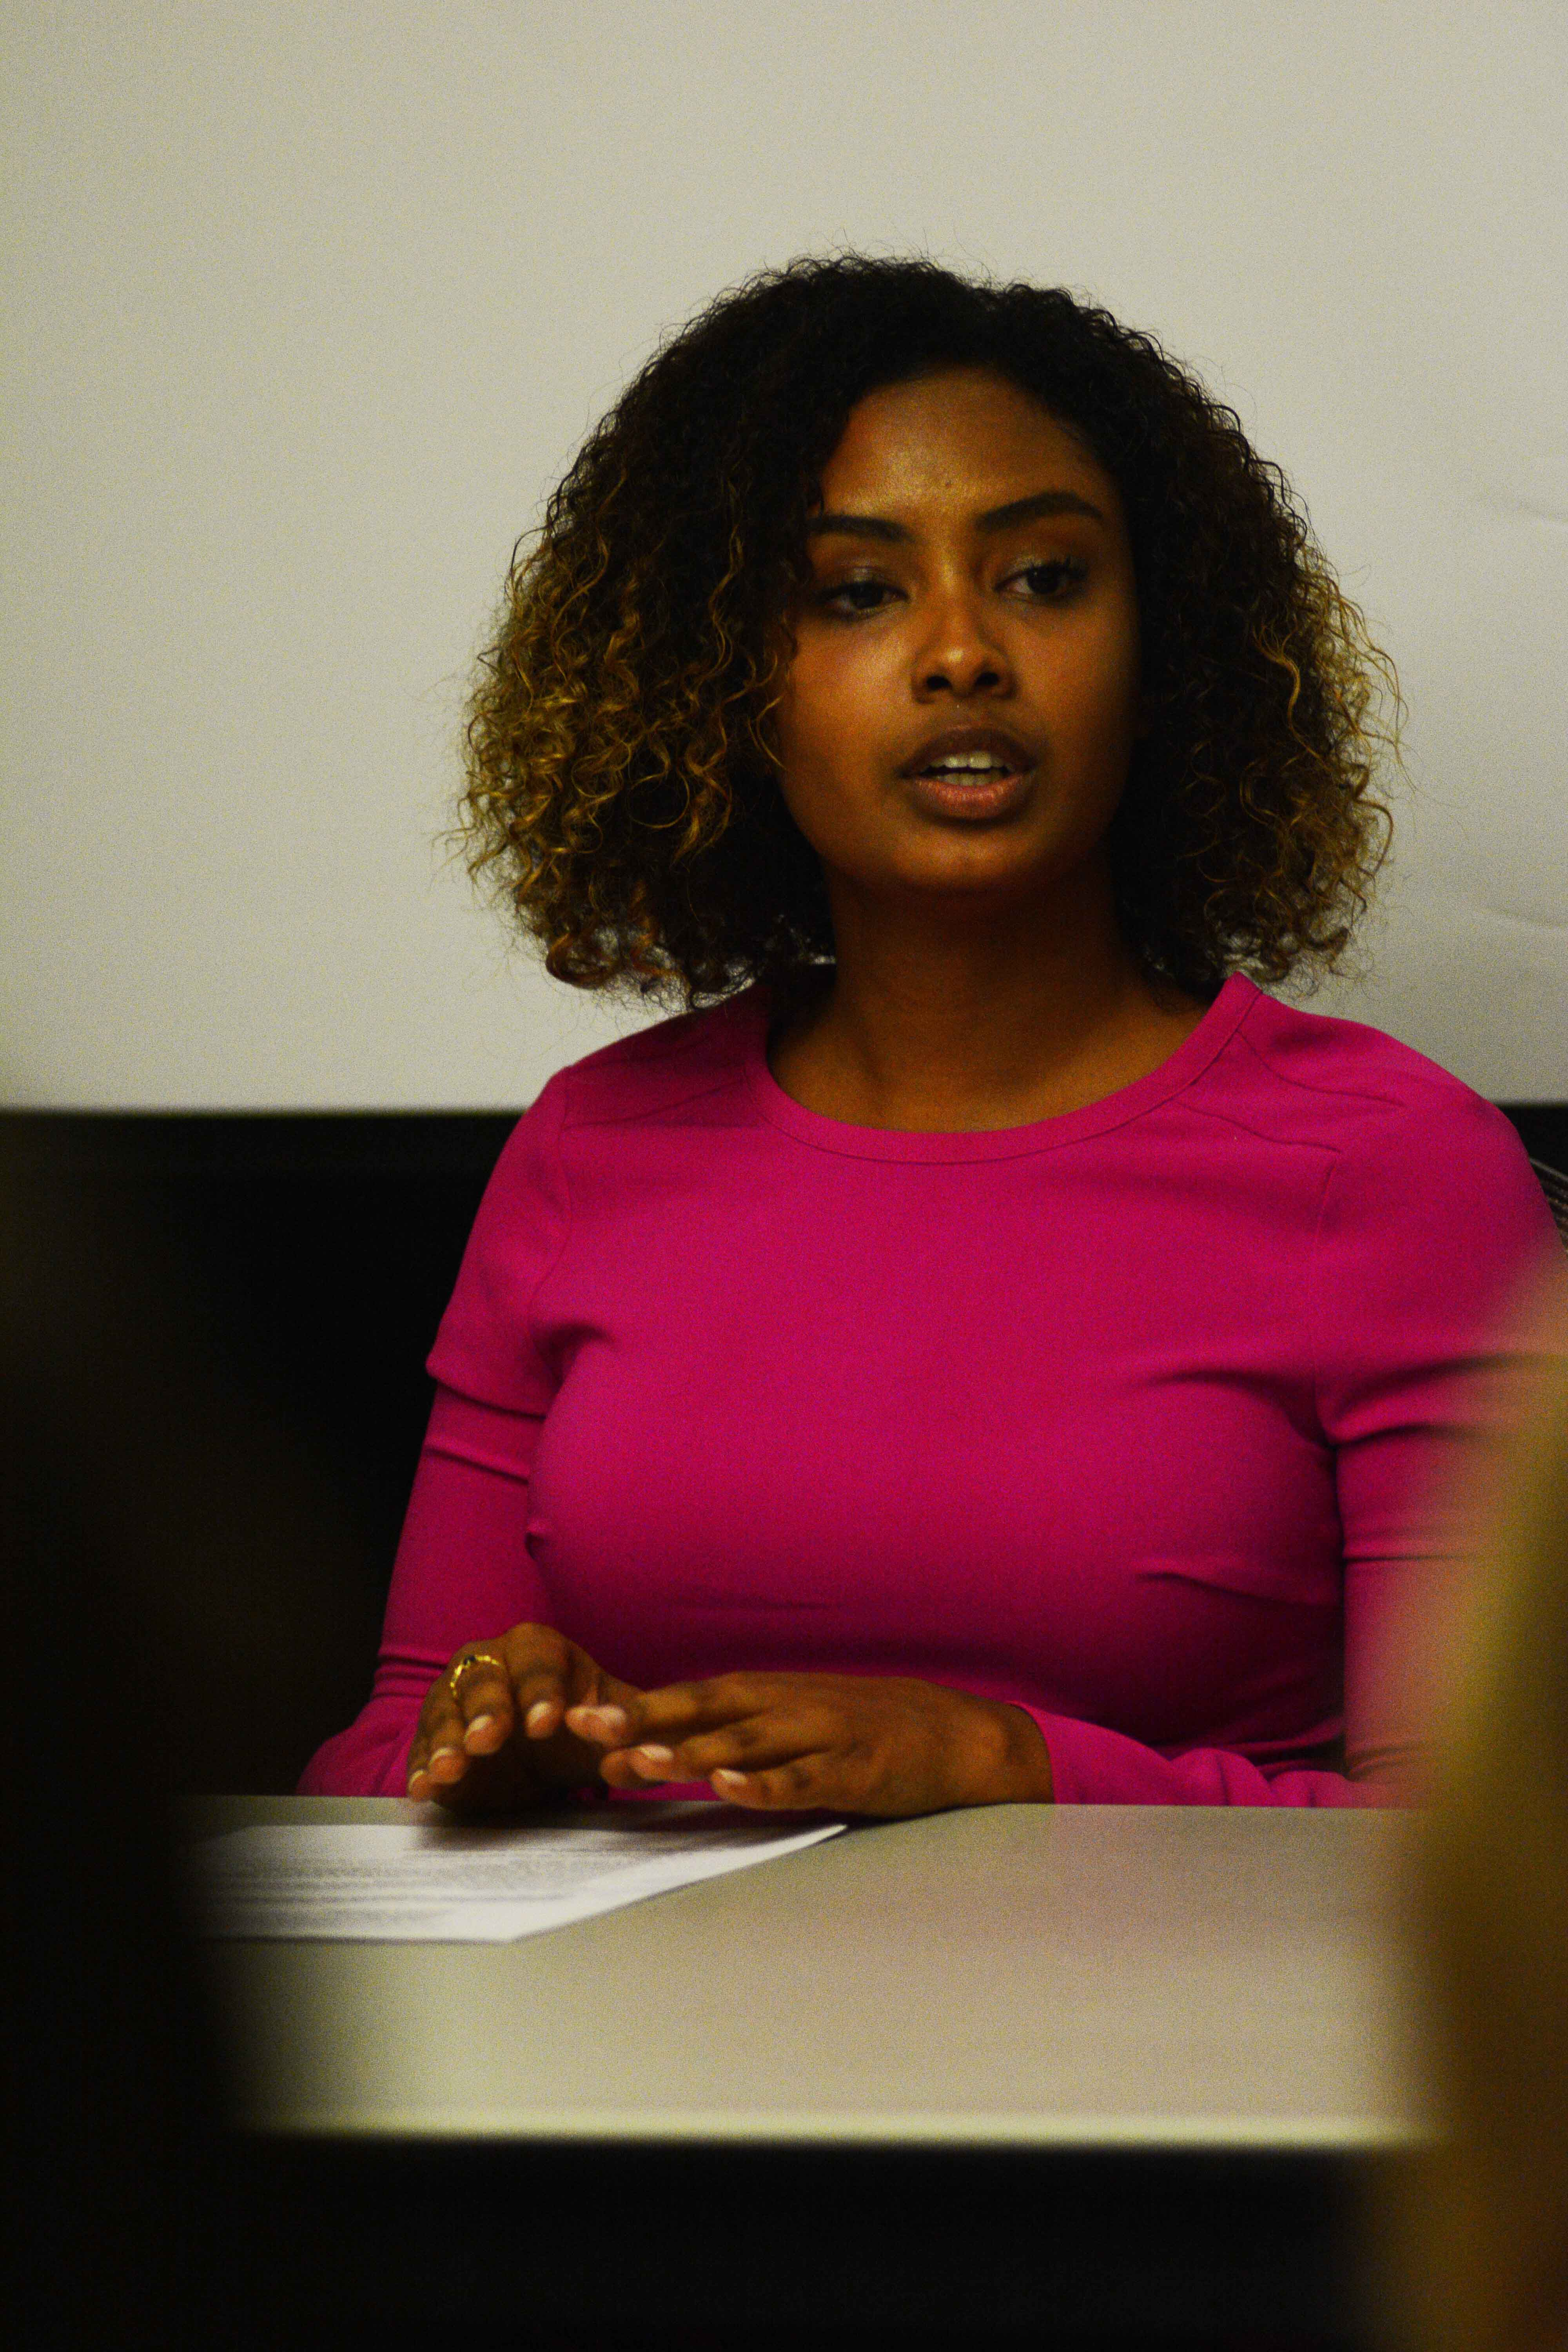 Raneem Shameldin, pictured at a debate on March 6, is predicted to win the election for student body president.